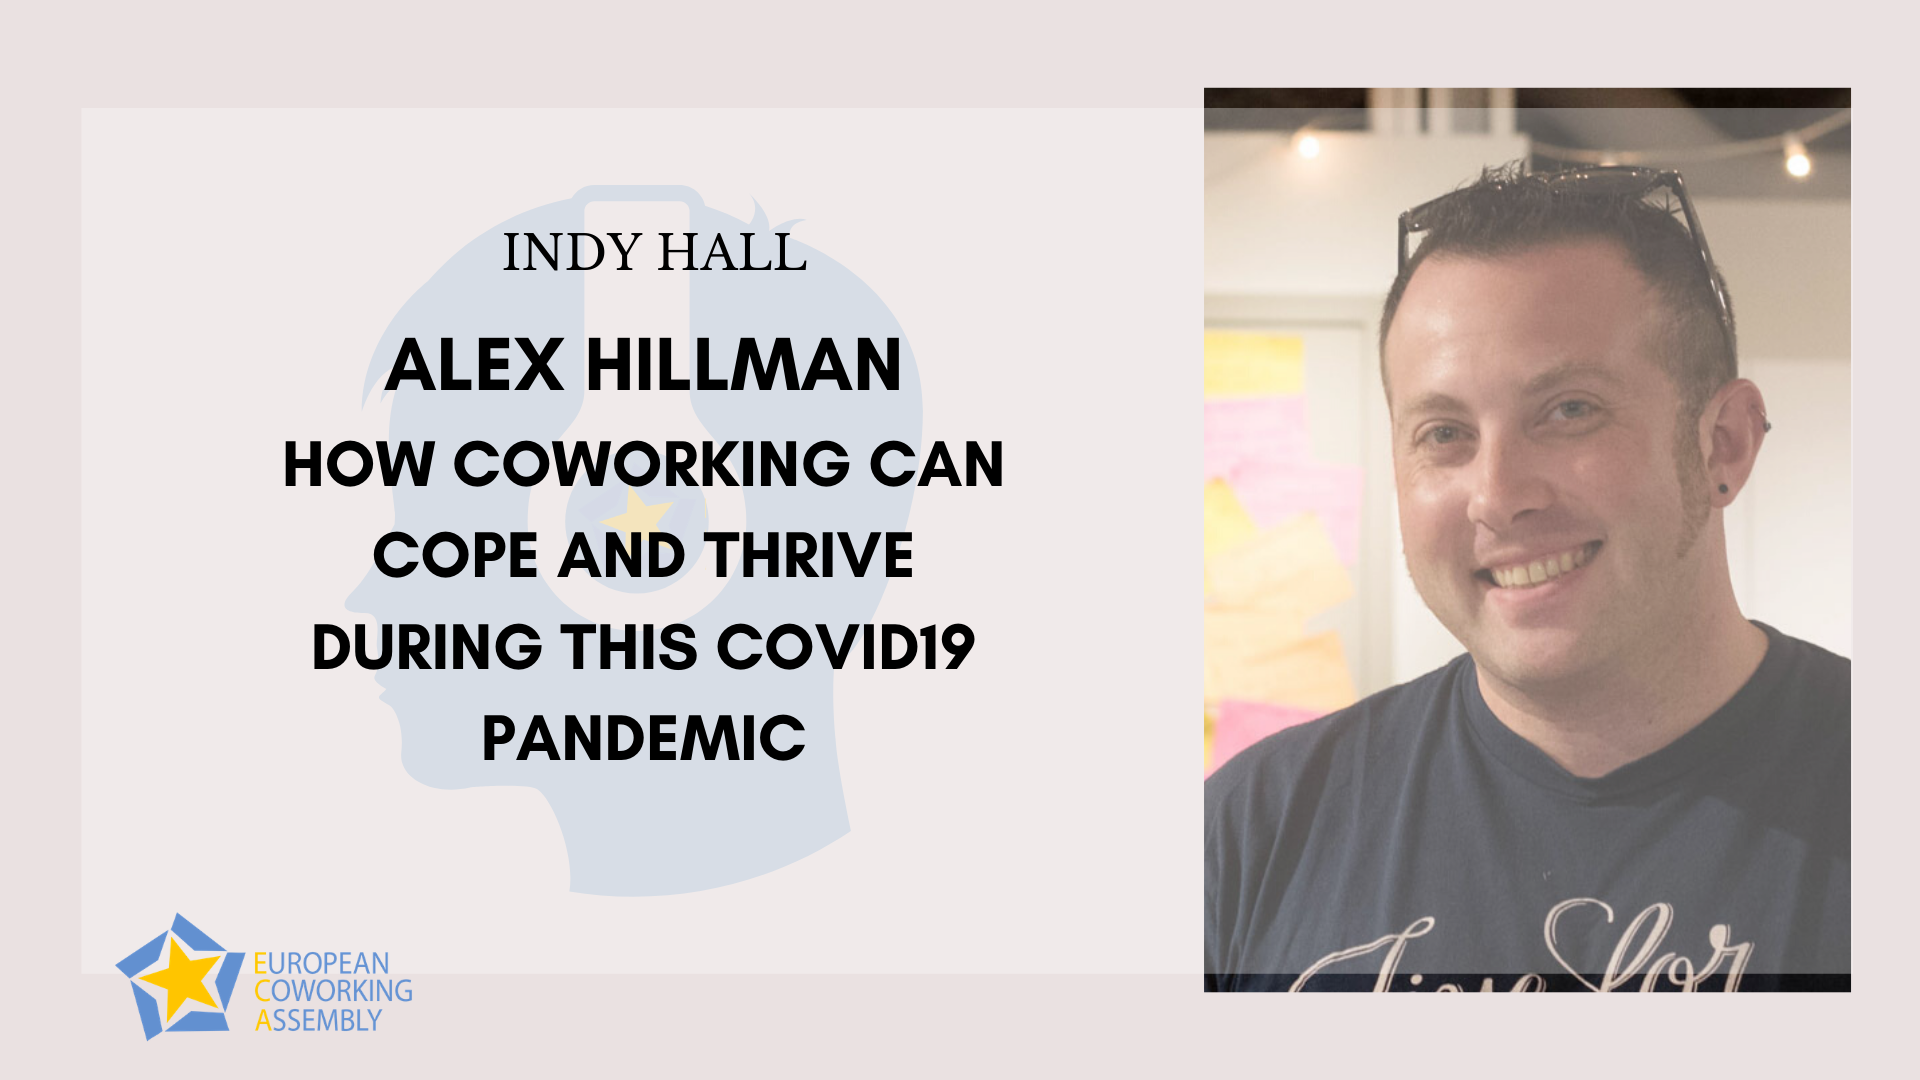 Alex Hillman – How Can Coworking Cope During the COVID19 Pandemic